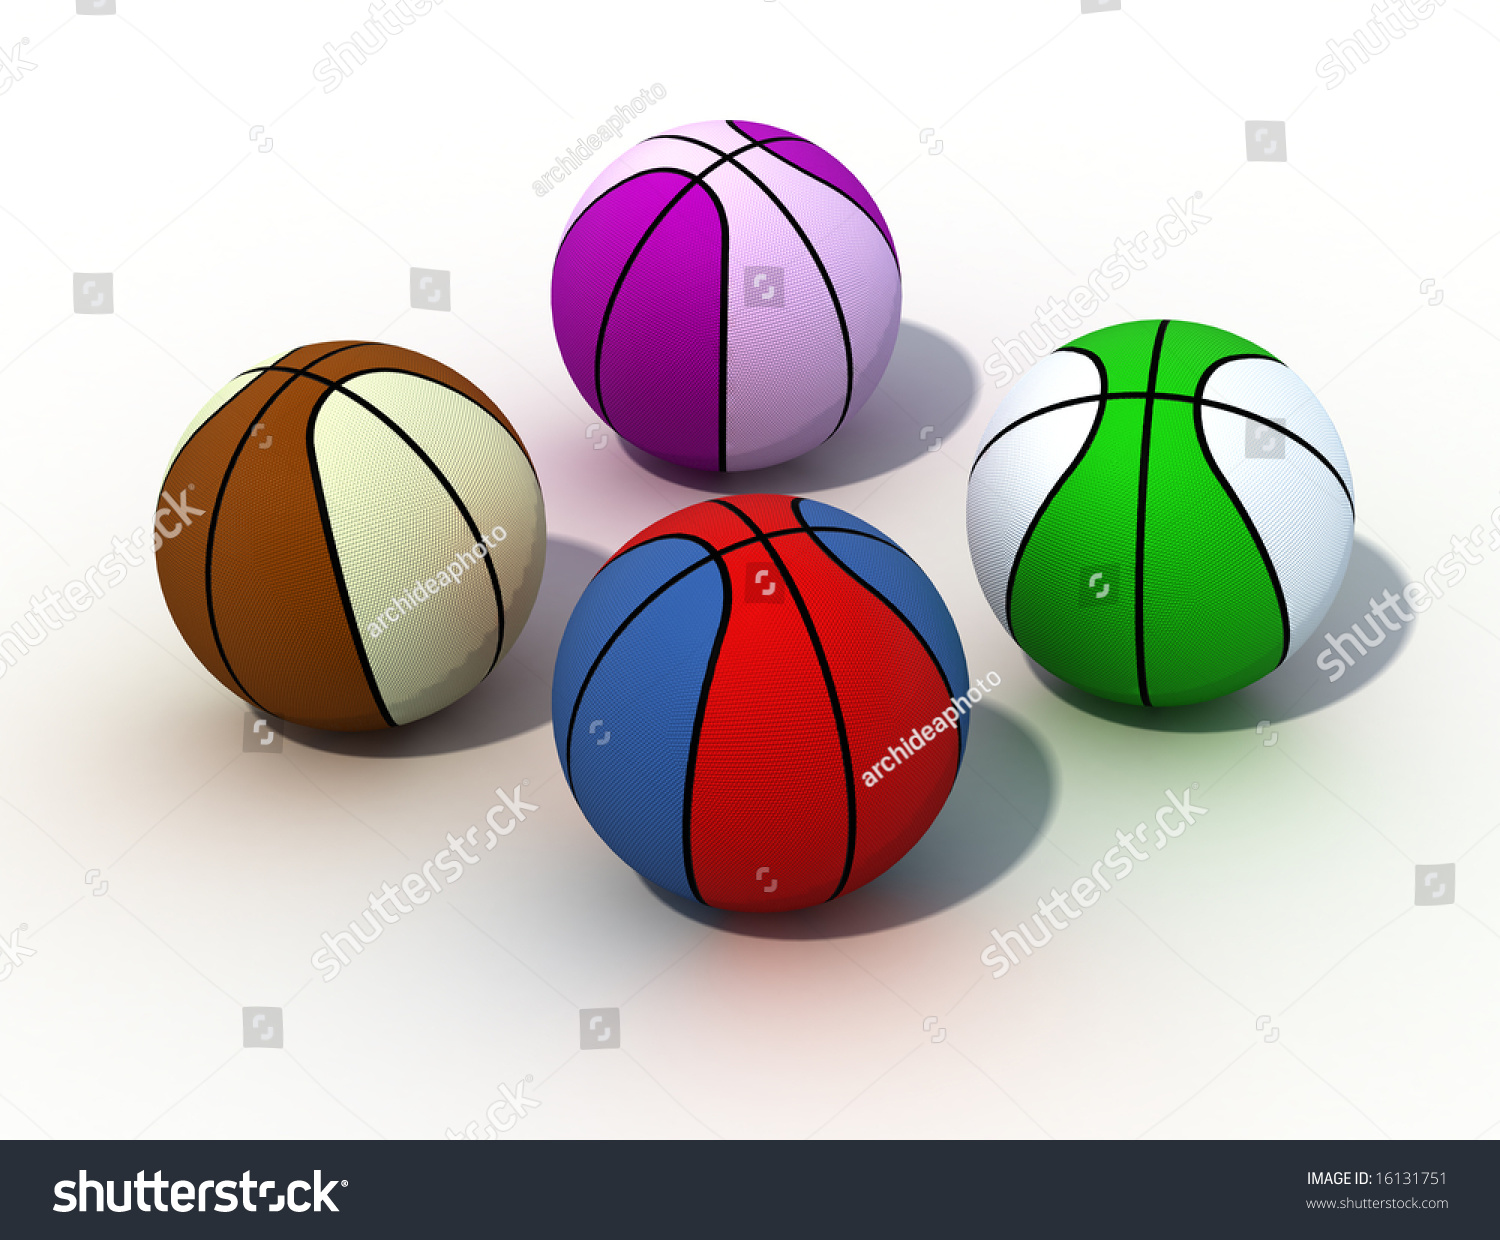 colored basketball isolated on white background digital